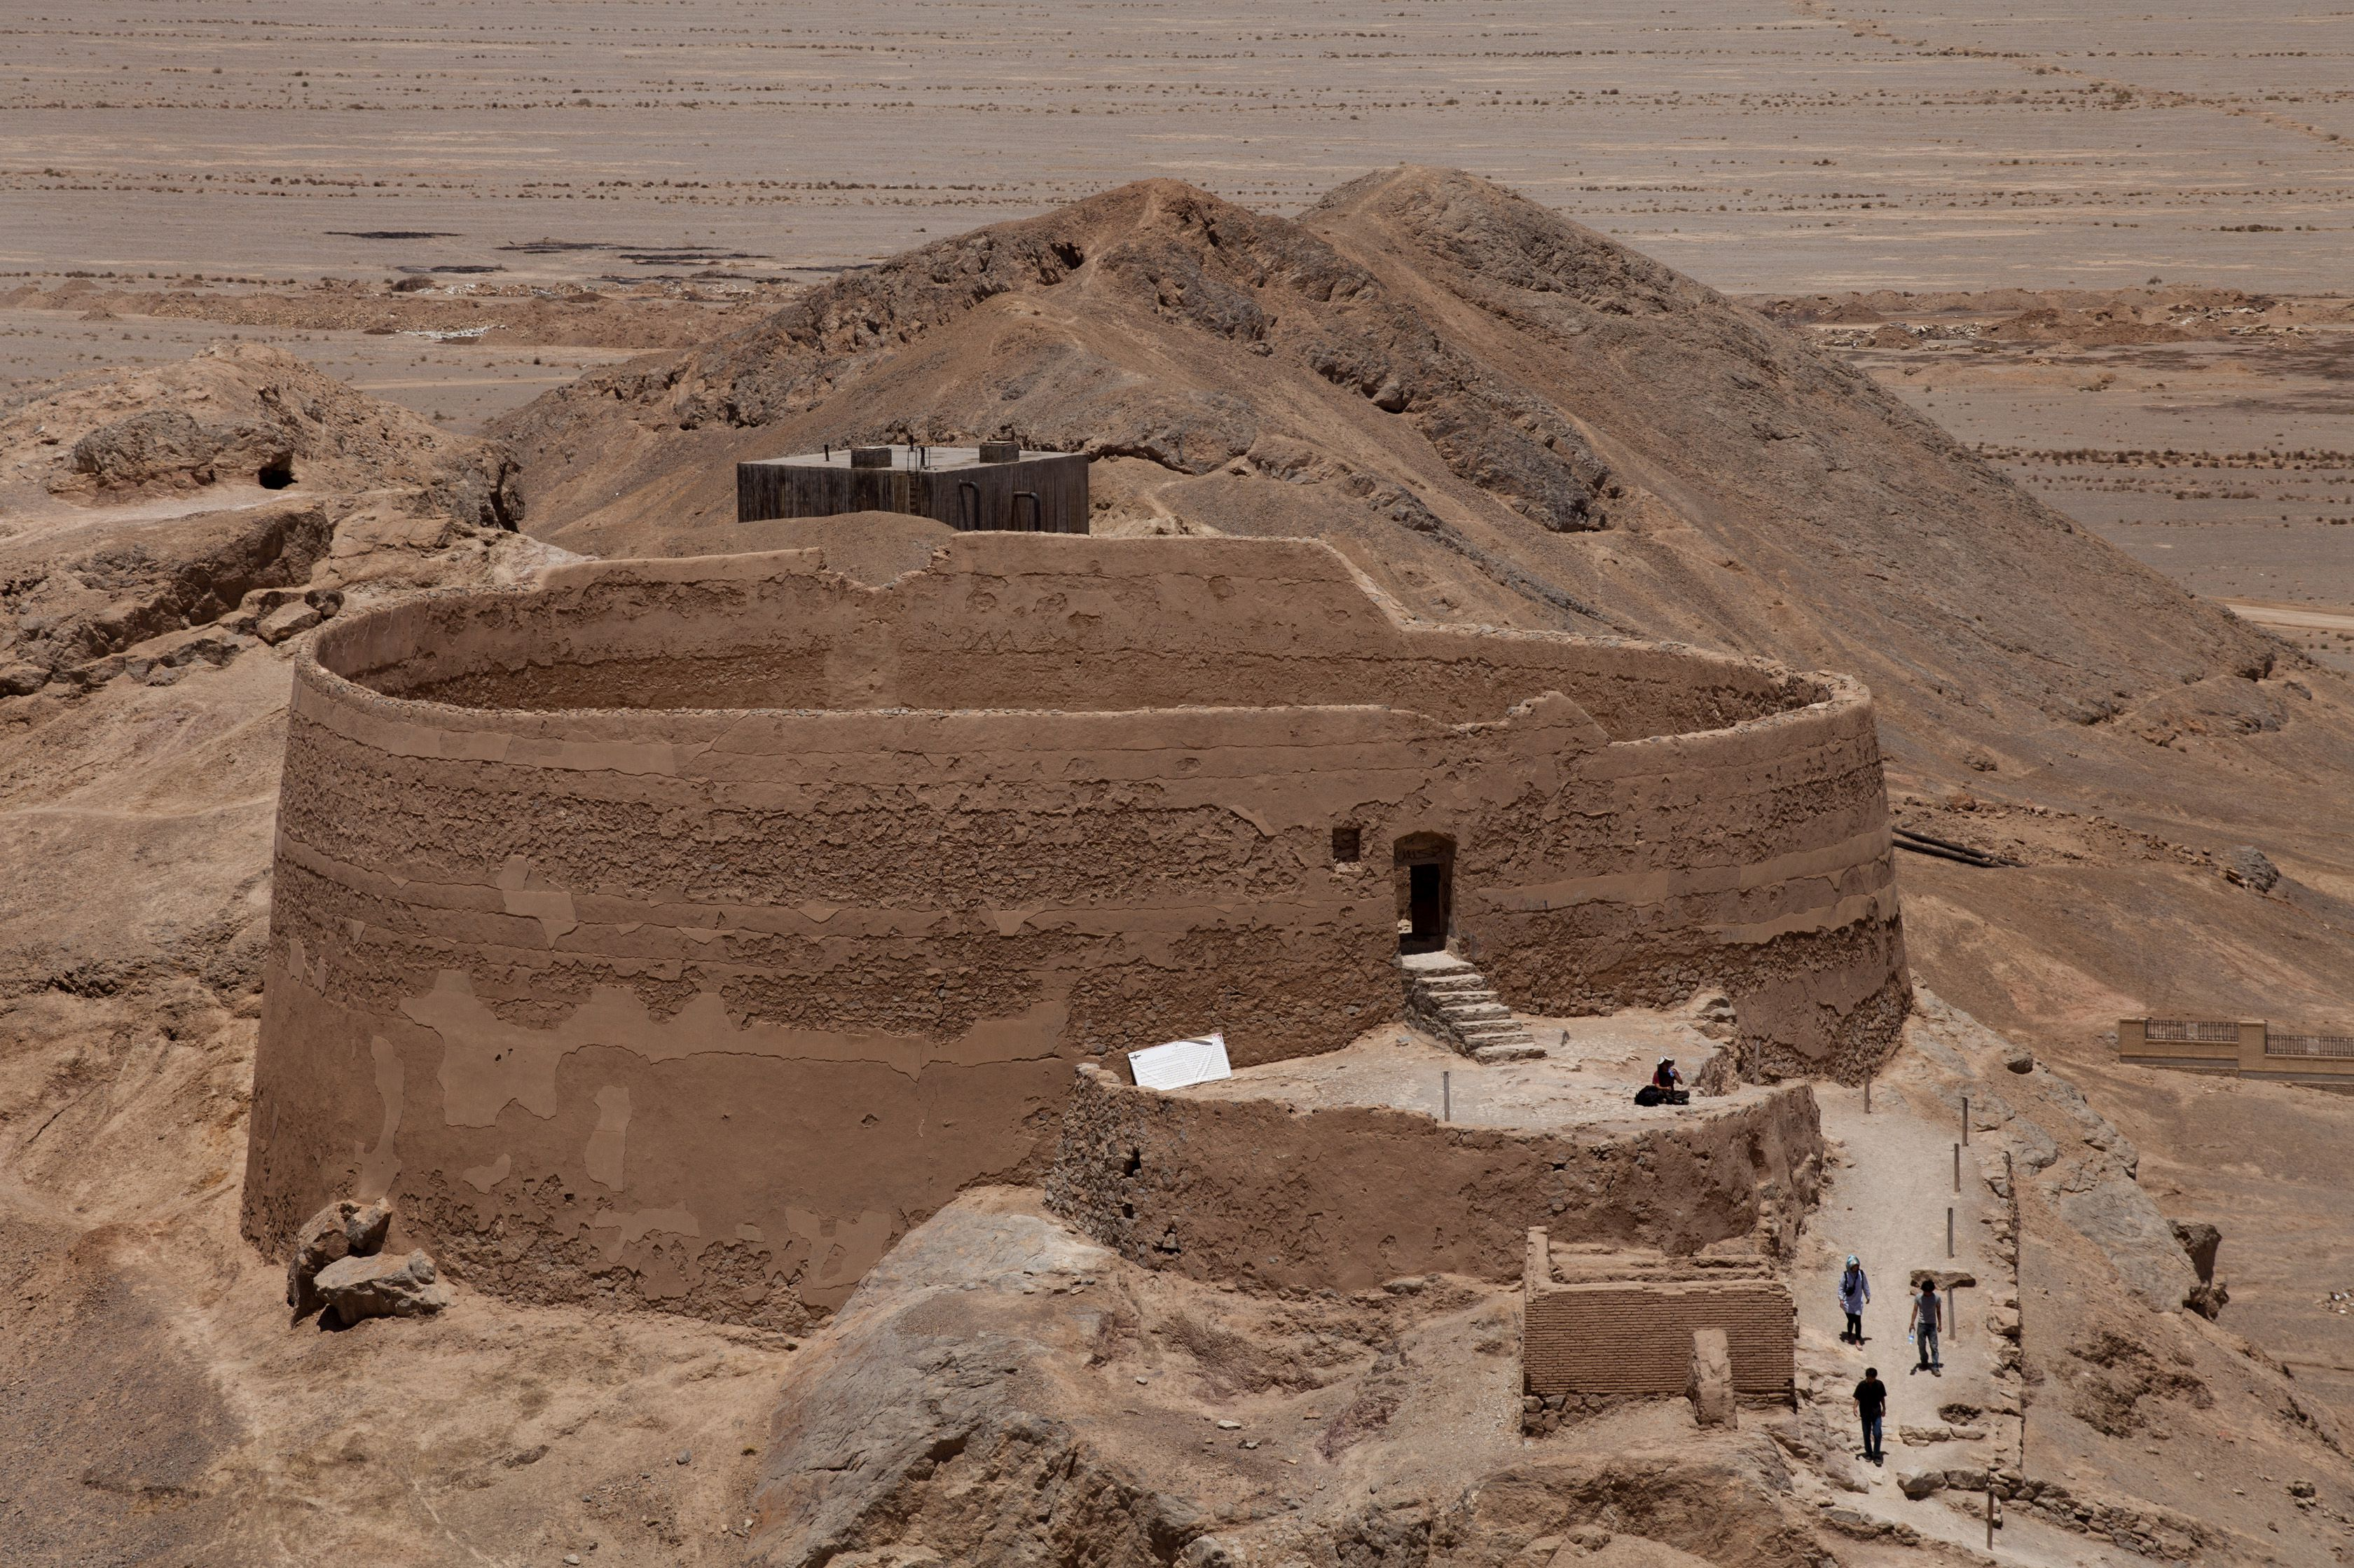 large, earthen cylindrical structure, like a big kettle